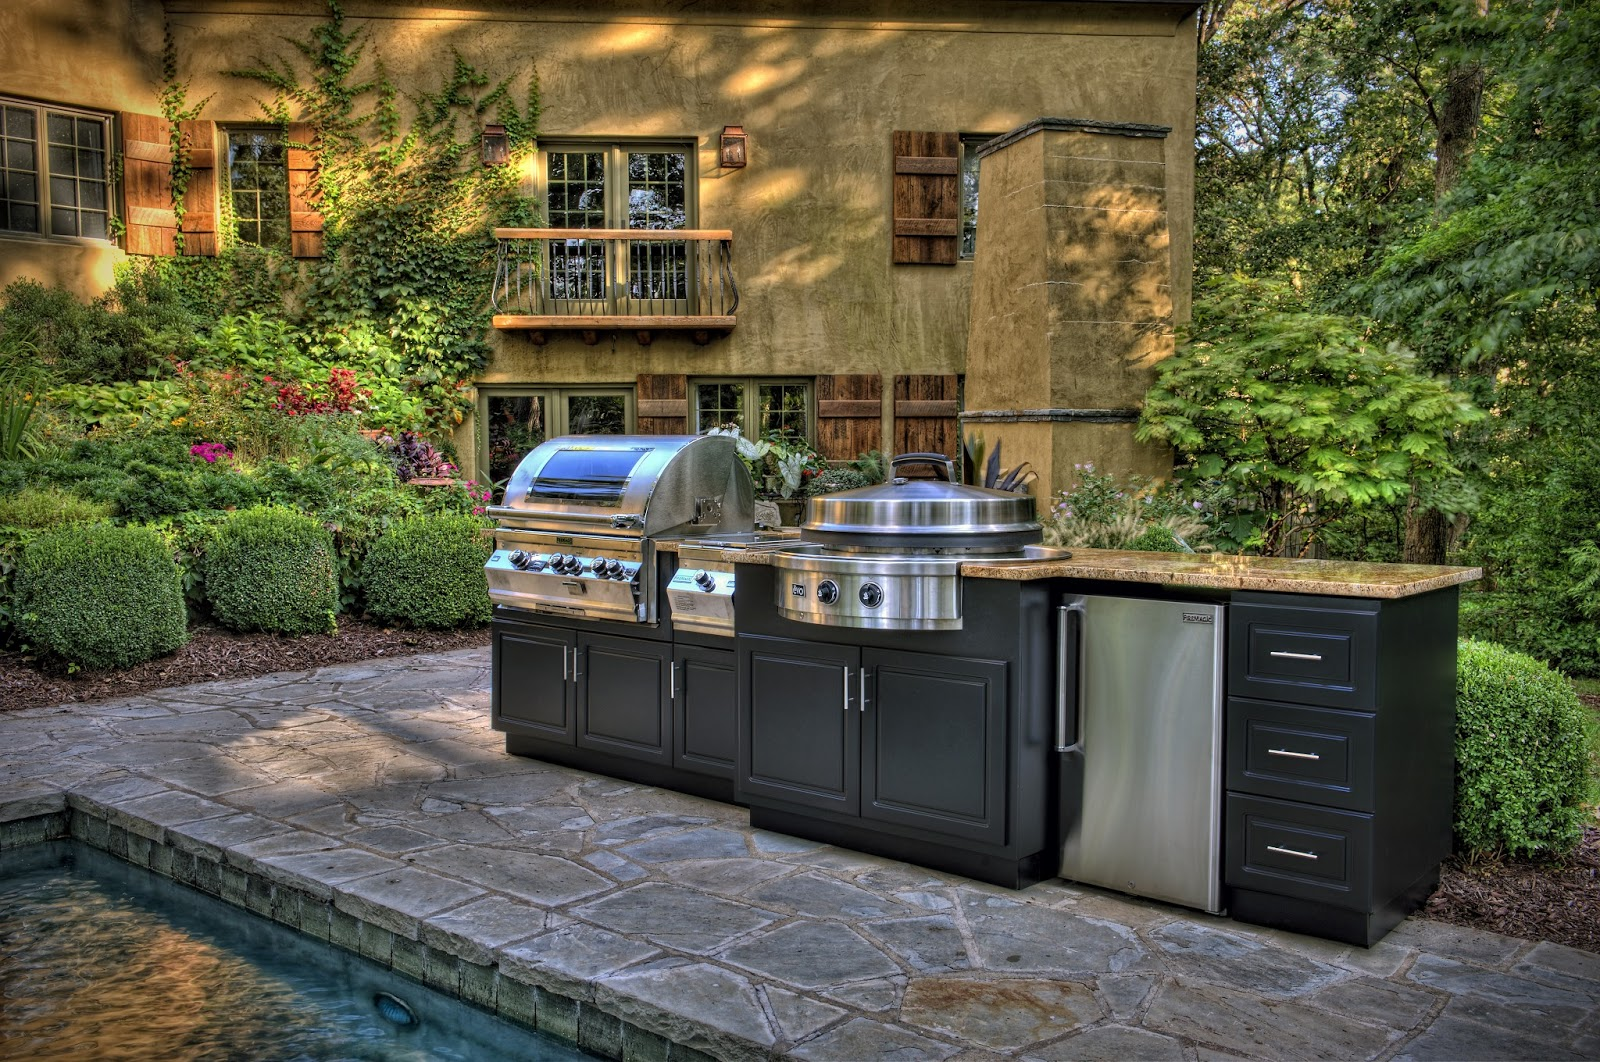 MODE CONCRETE Luxury Outdoor Kitchen Importers Installers and